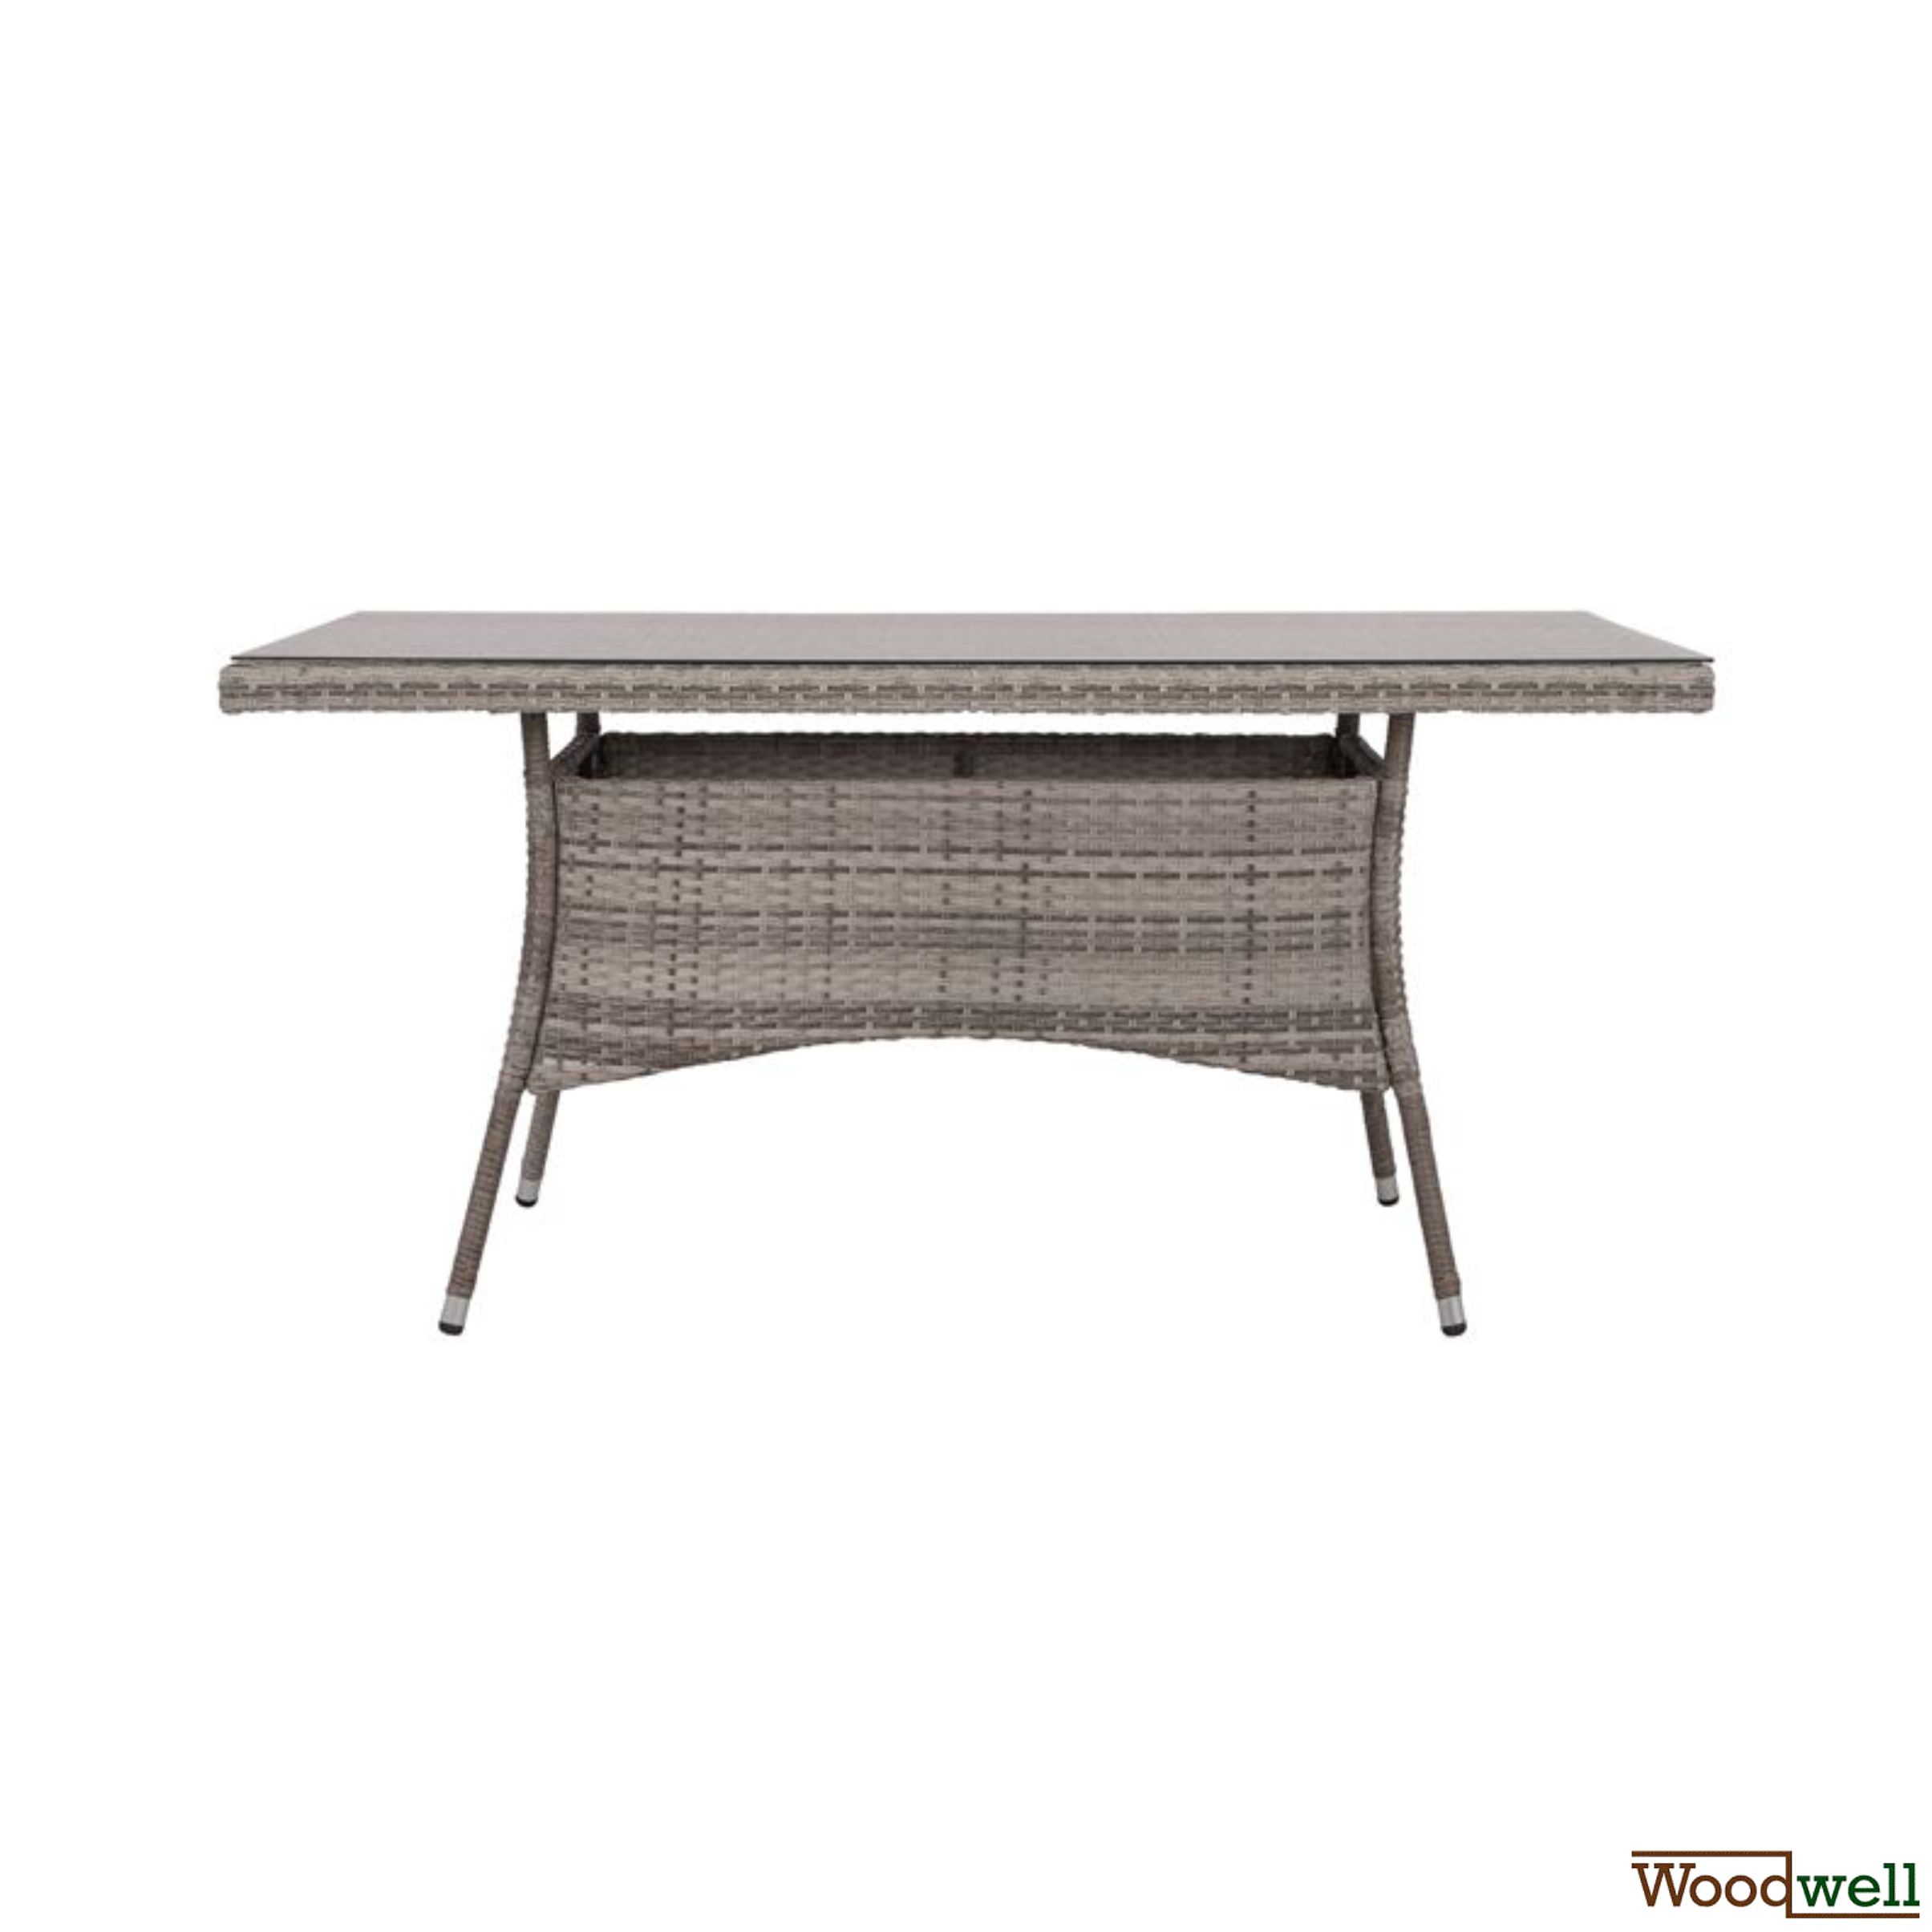 Buy Furniture Cheap Indoor Outdoor Furniture For The Catering Industry And Your Home Fast Convenient Buy At The Best Price Save Now Large Aluminum